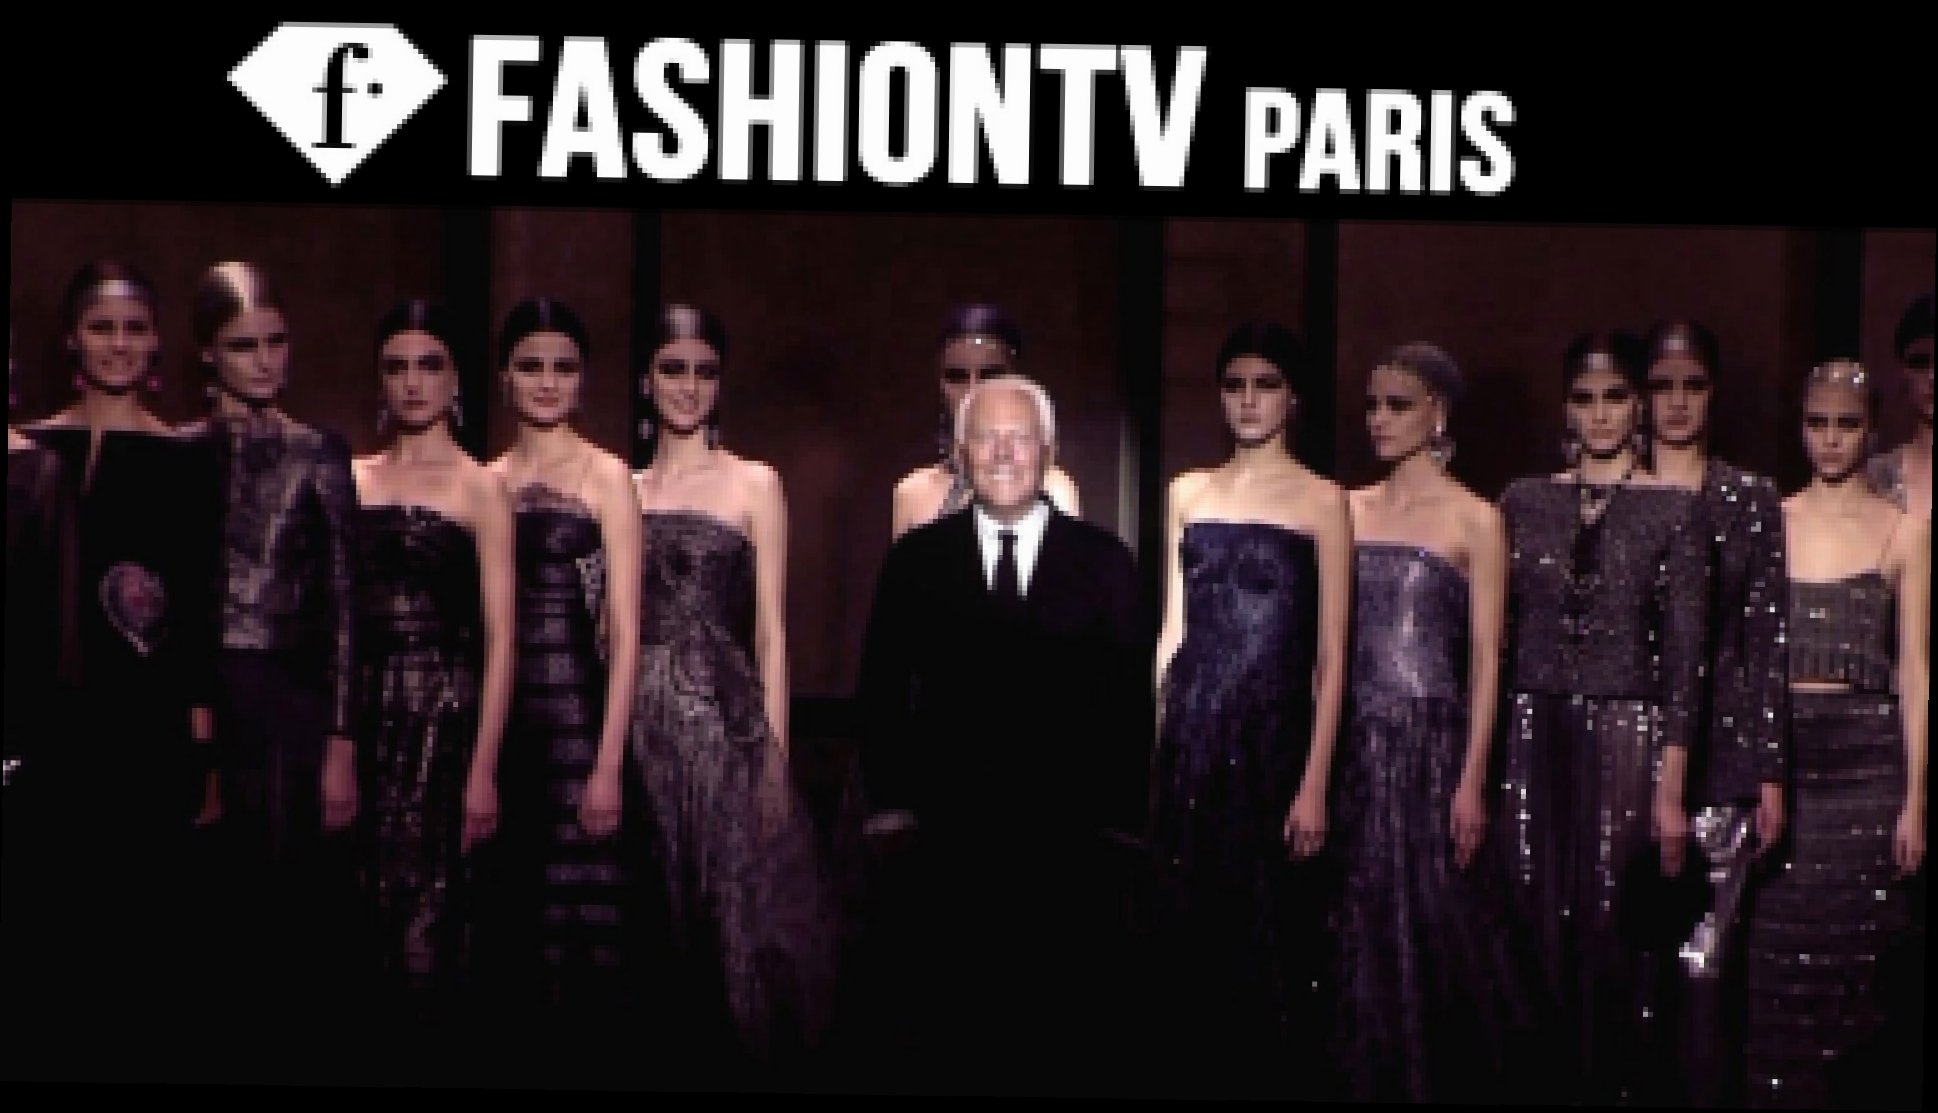 ИСТОРИЯ Джорджио Армани 22-24 августа выходные на FashionTV | THE STORY OF GIORGIO ARMANI  - видеоклип на песню